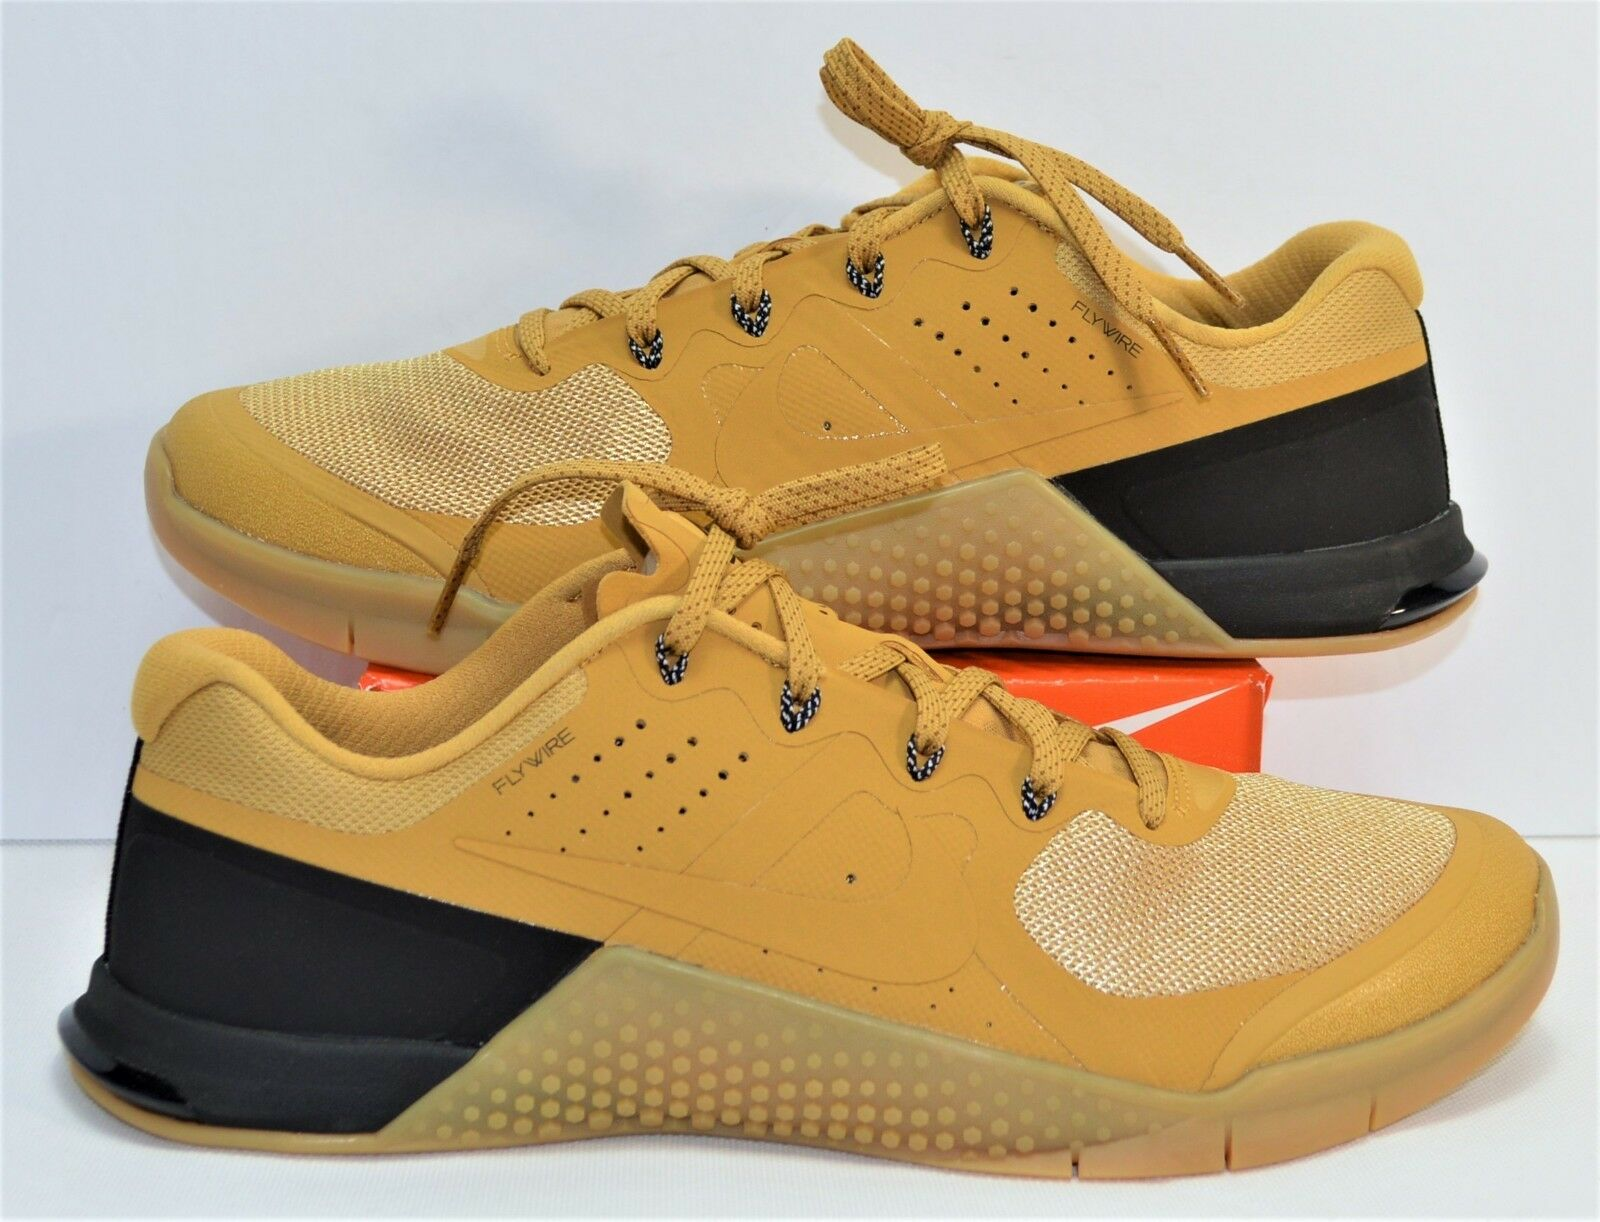 e37779aa73 Nike Metcon 2 Wheat & Gum Cross Fit Training Running shoes Sz 11 NEW 819899  702